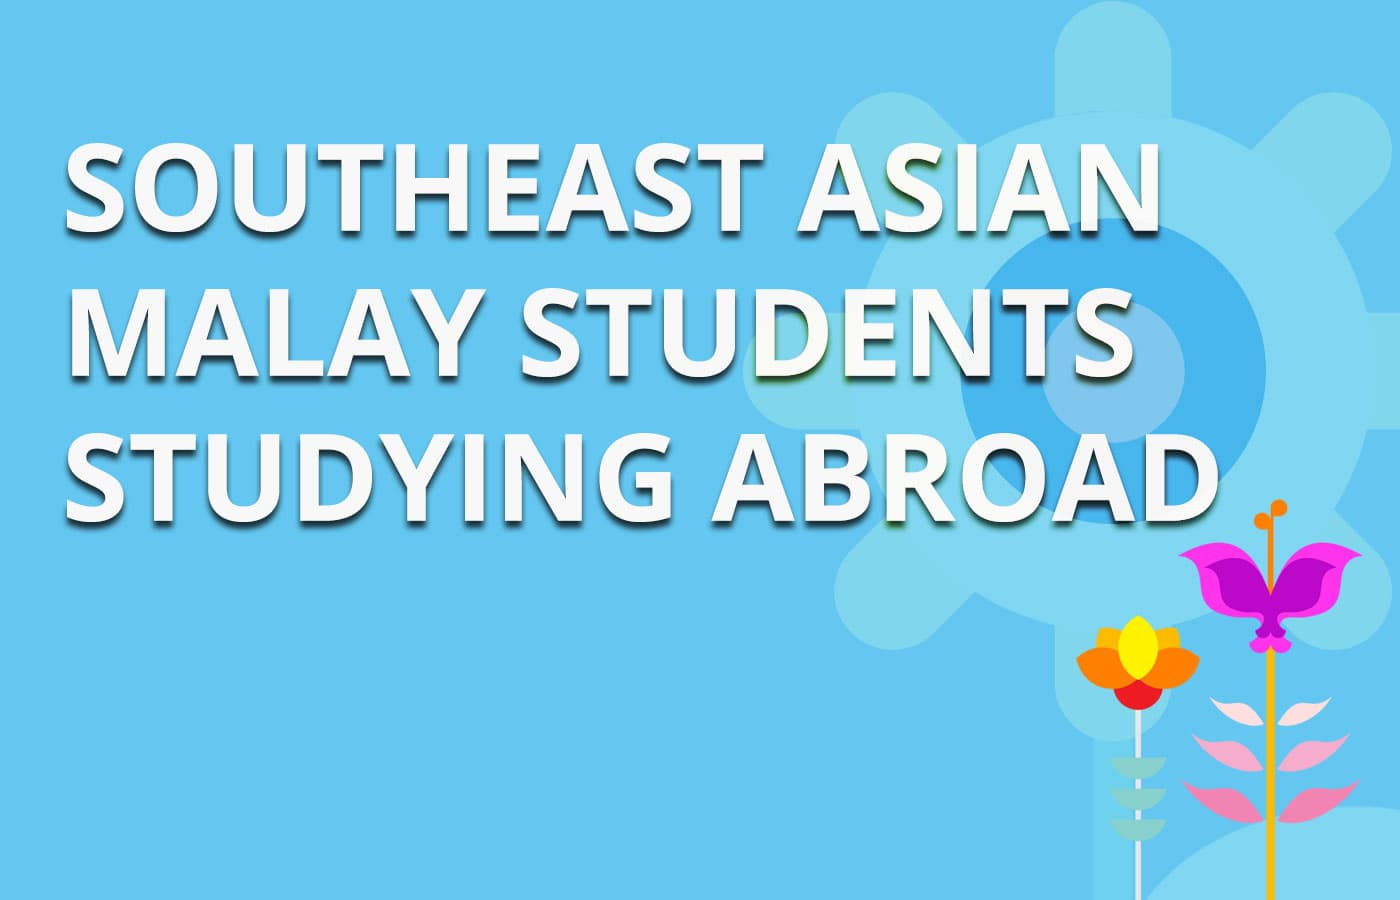 Seminar on Malay Students Studying Abroad